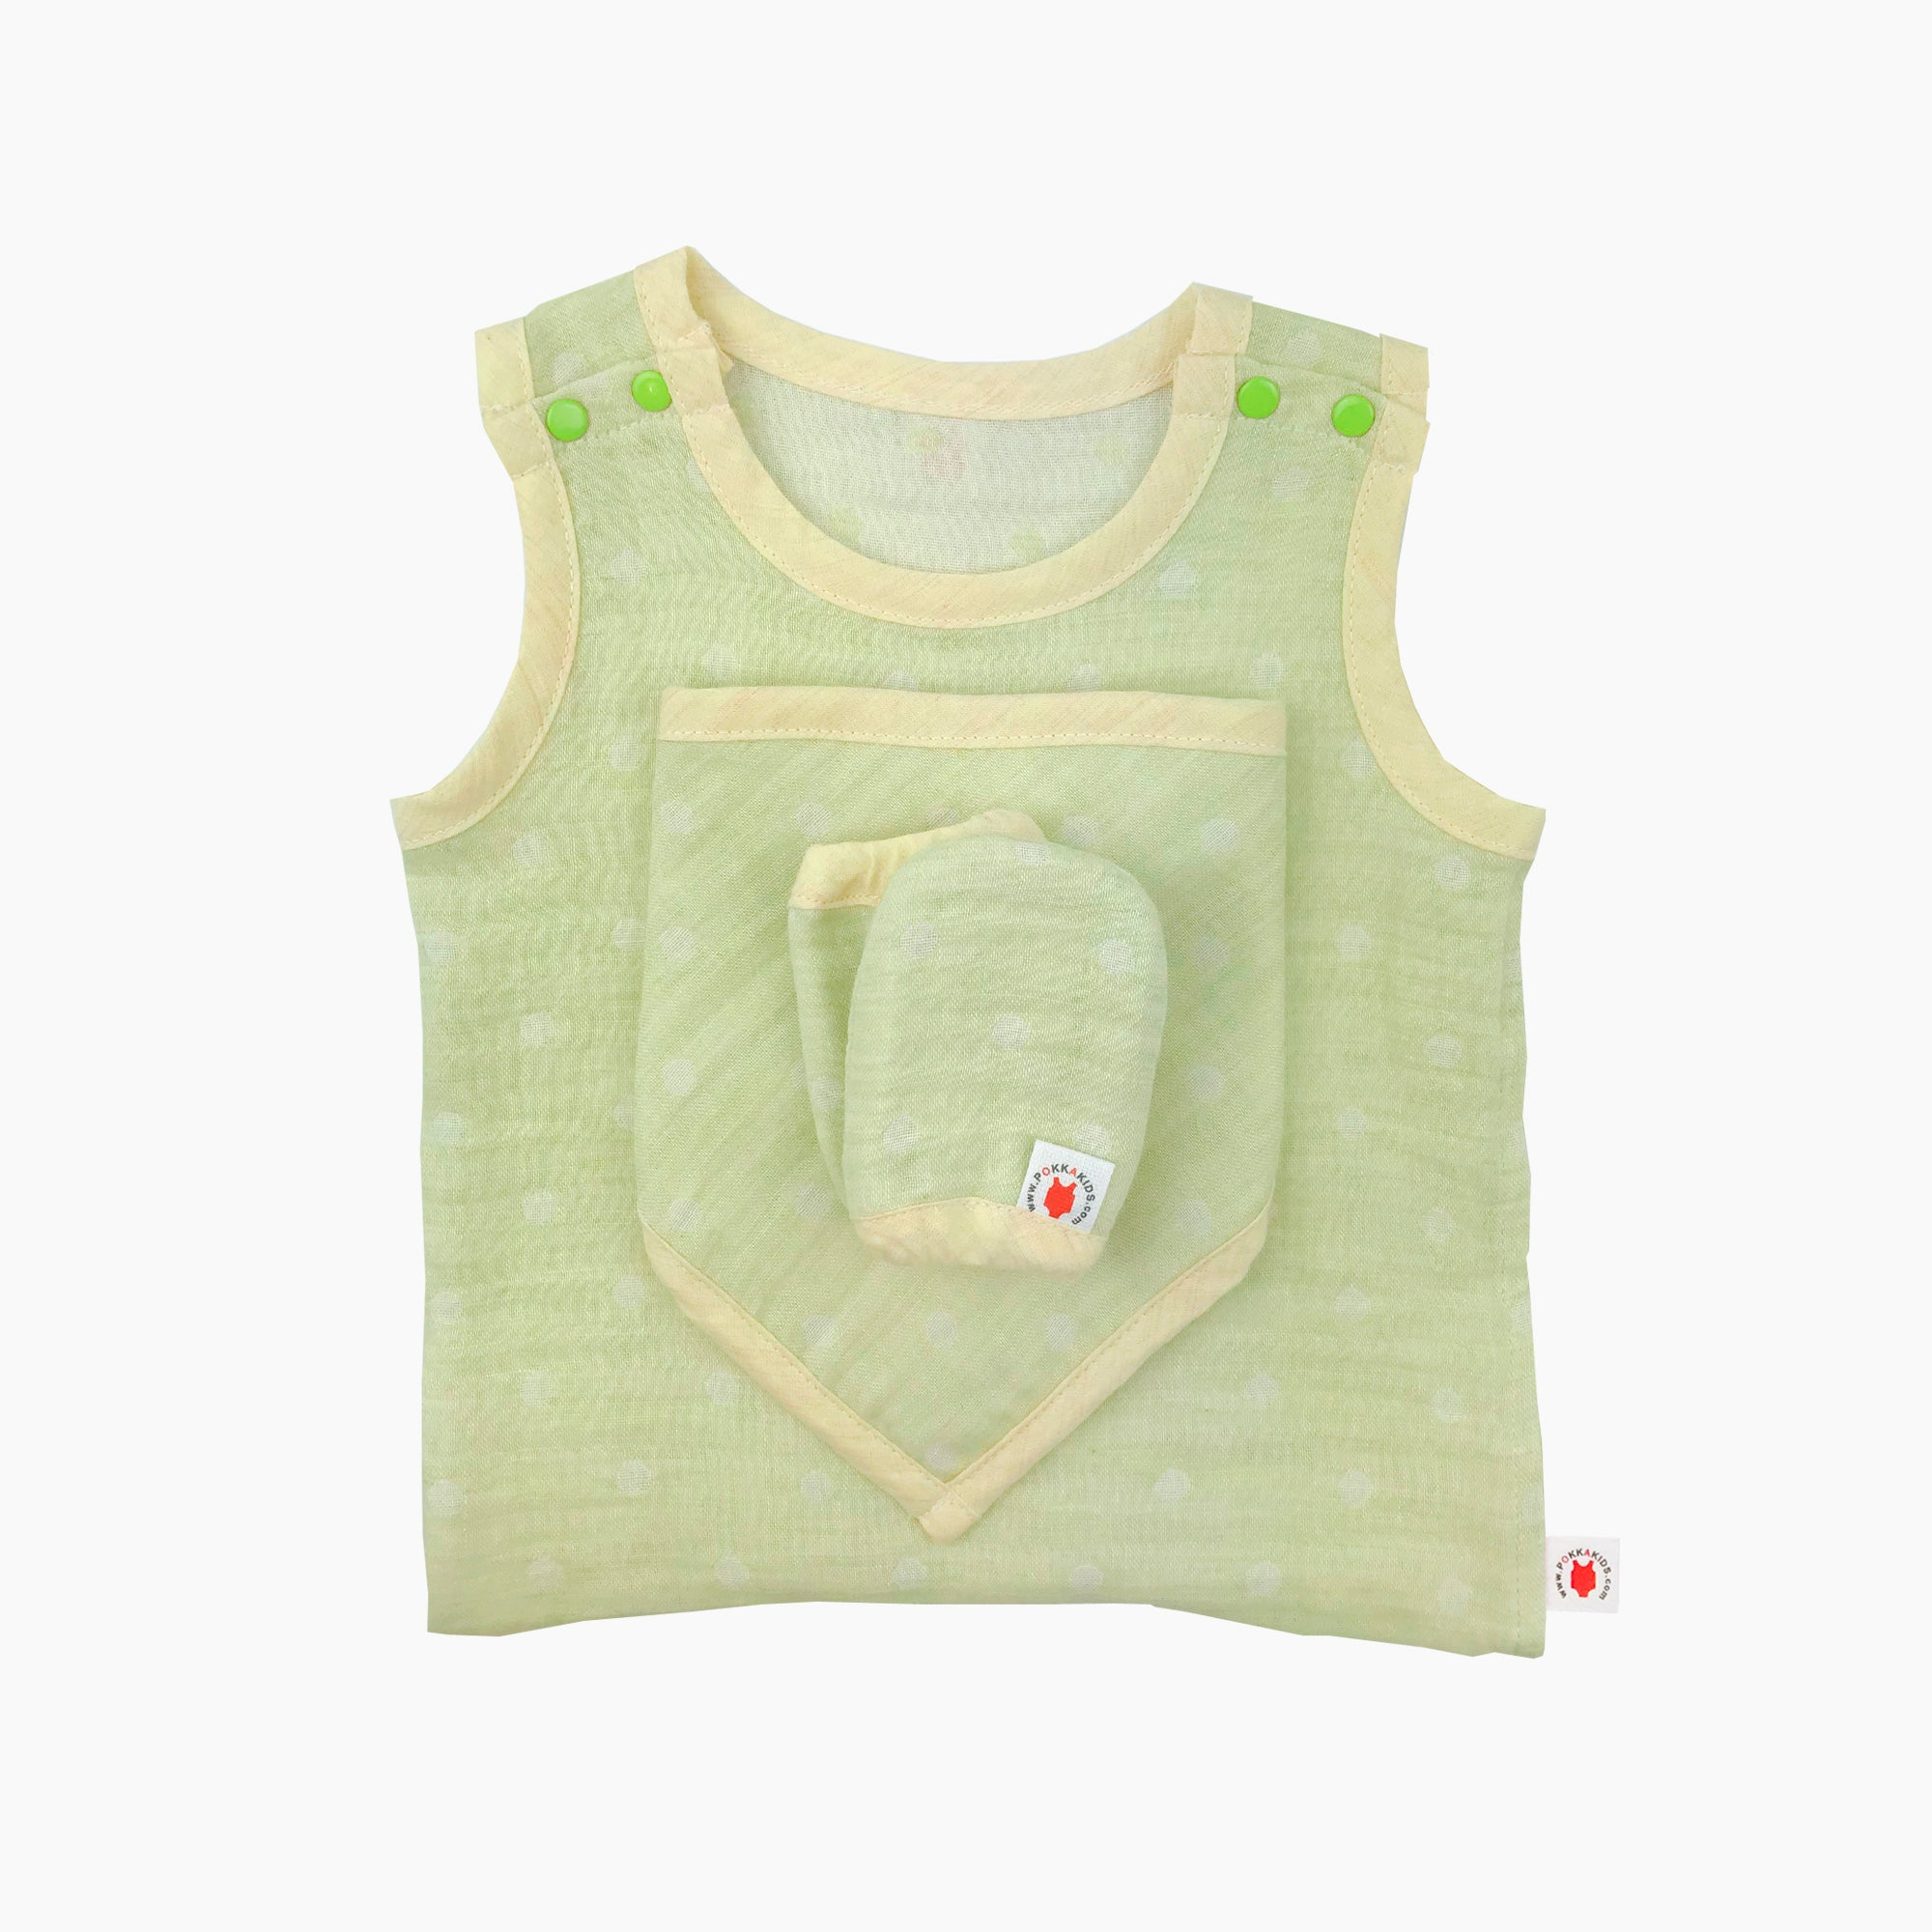 GOTS certified organic cotton baby gift includes bodysuit, bandana bib, and mittens for eczema in lime color